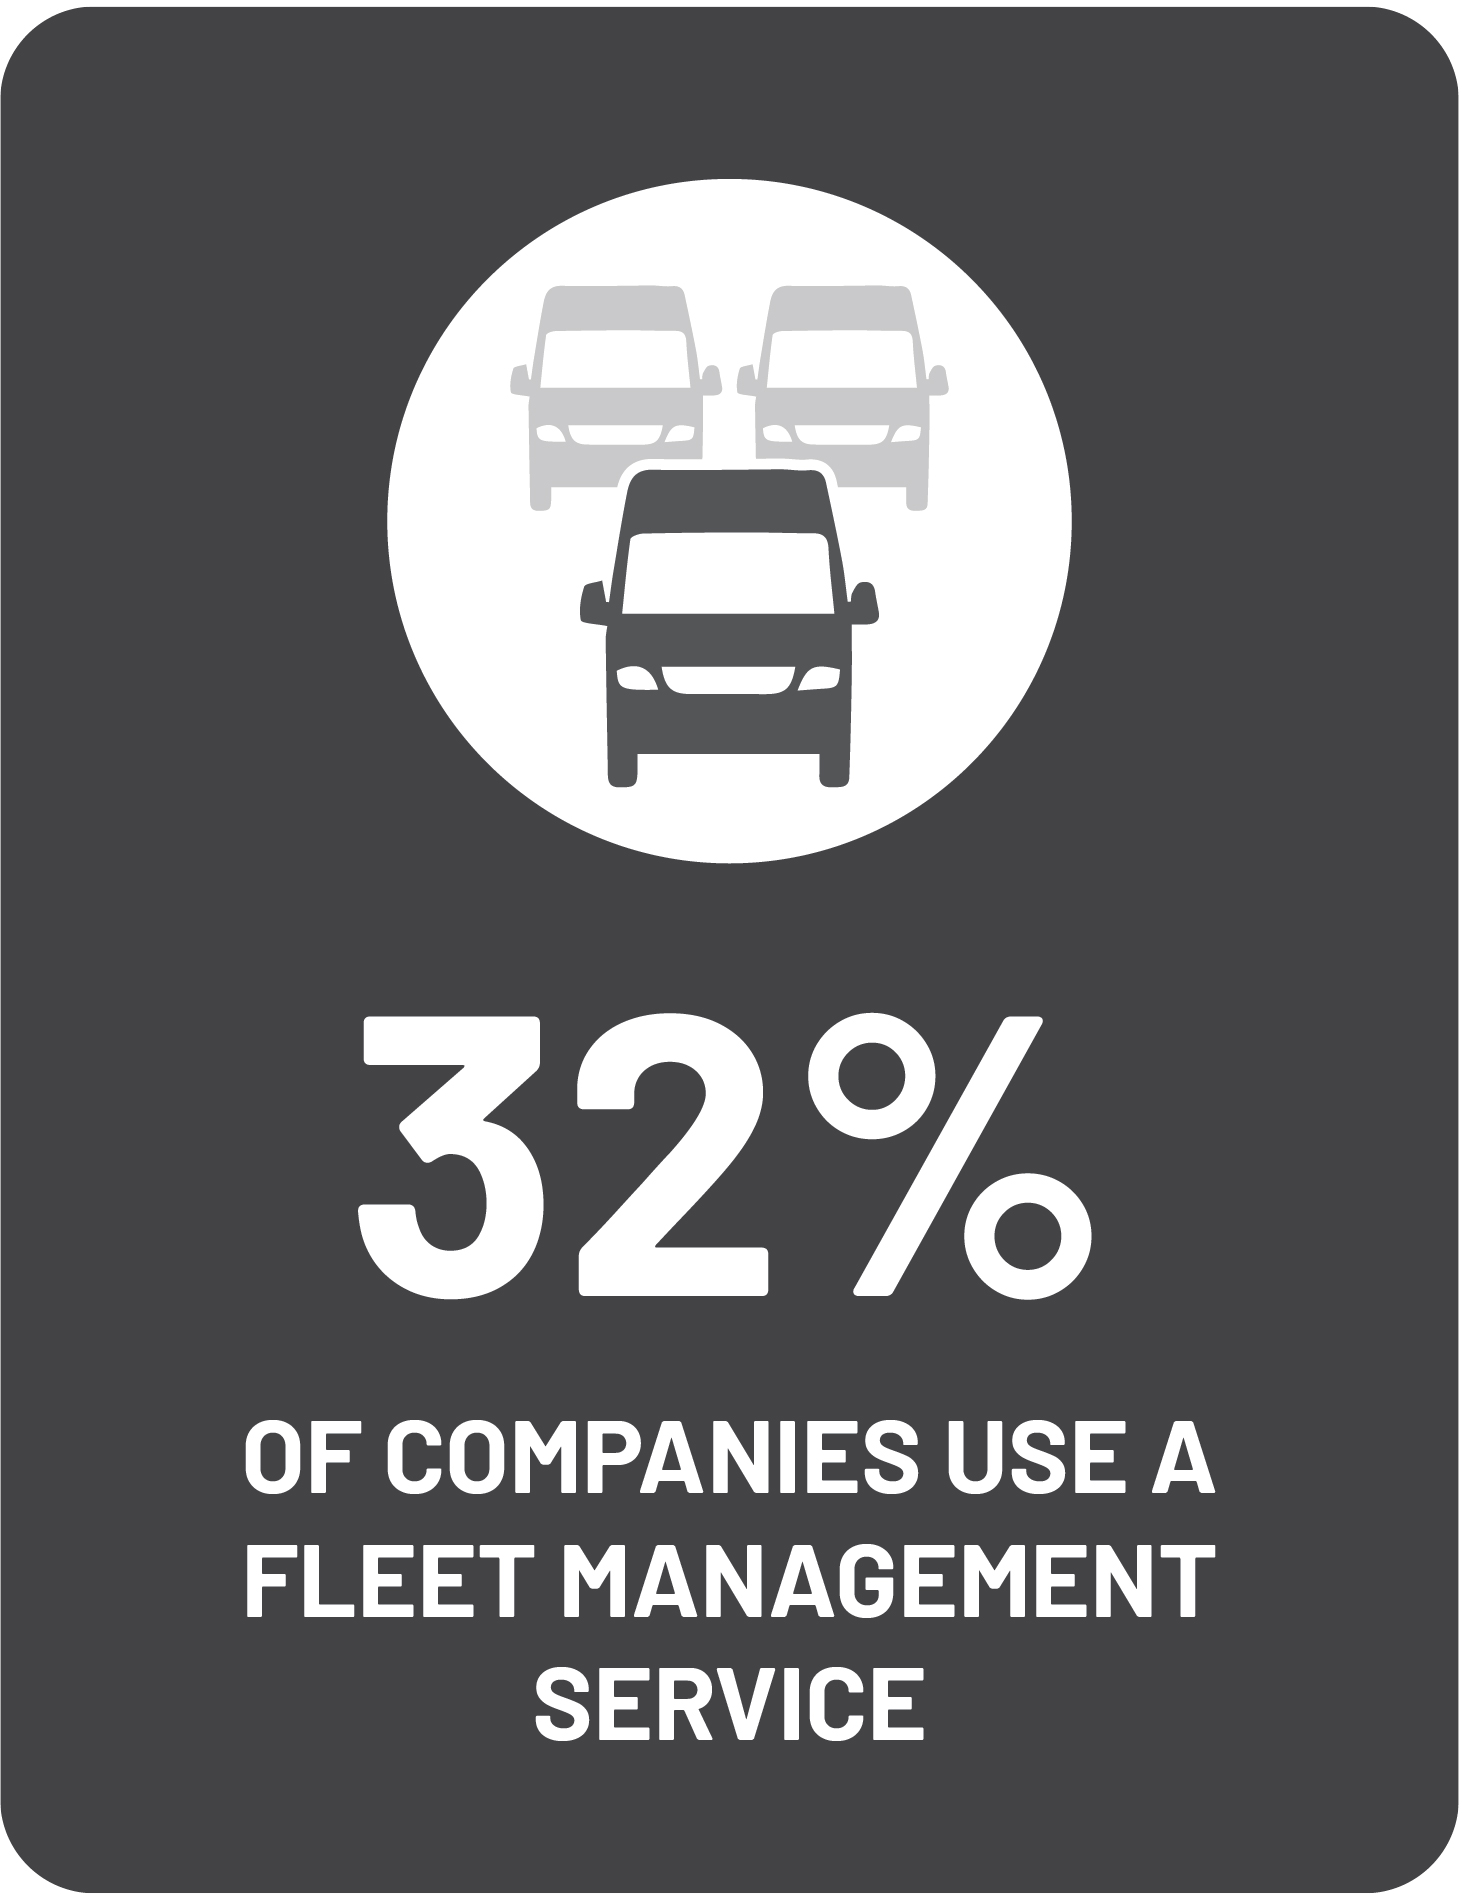 EGIA Snapshot Survey - Does your company use fleet management services?